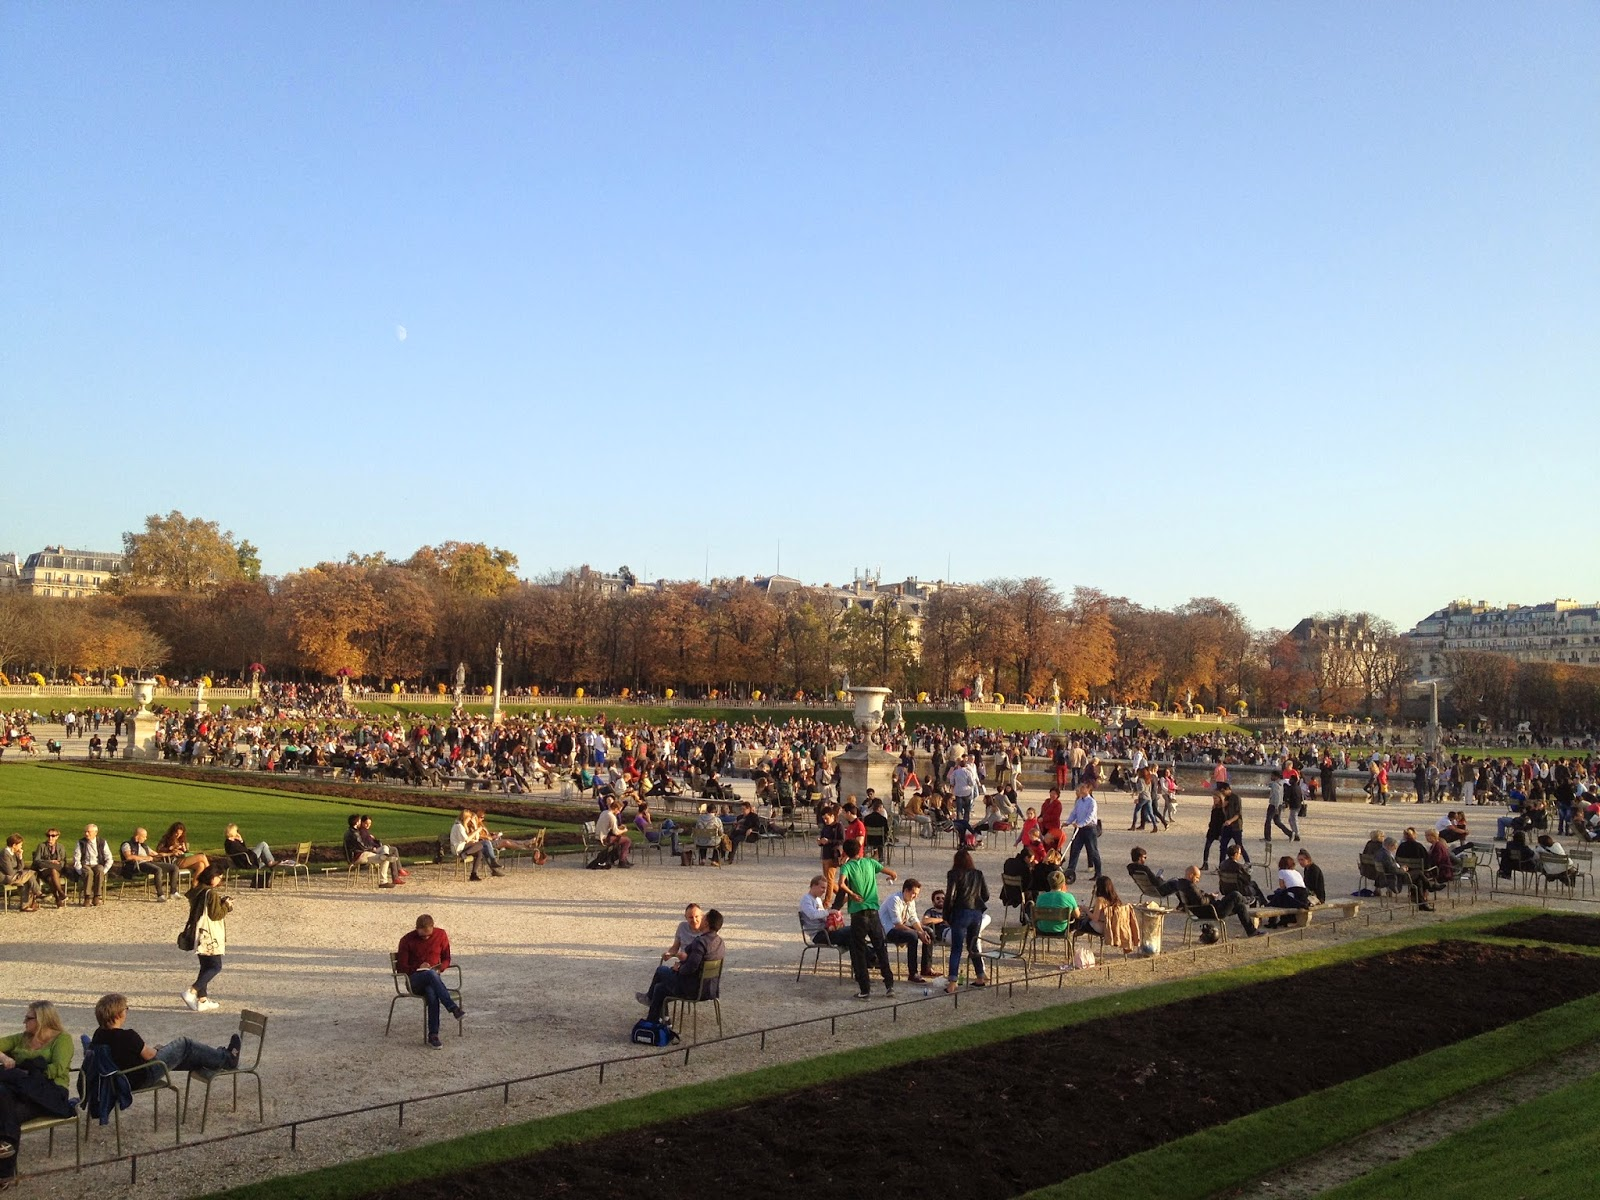 Crowd at the Jardin du Luxembourg, Paris